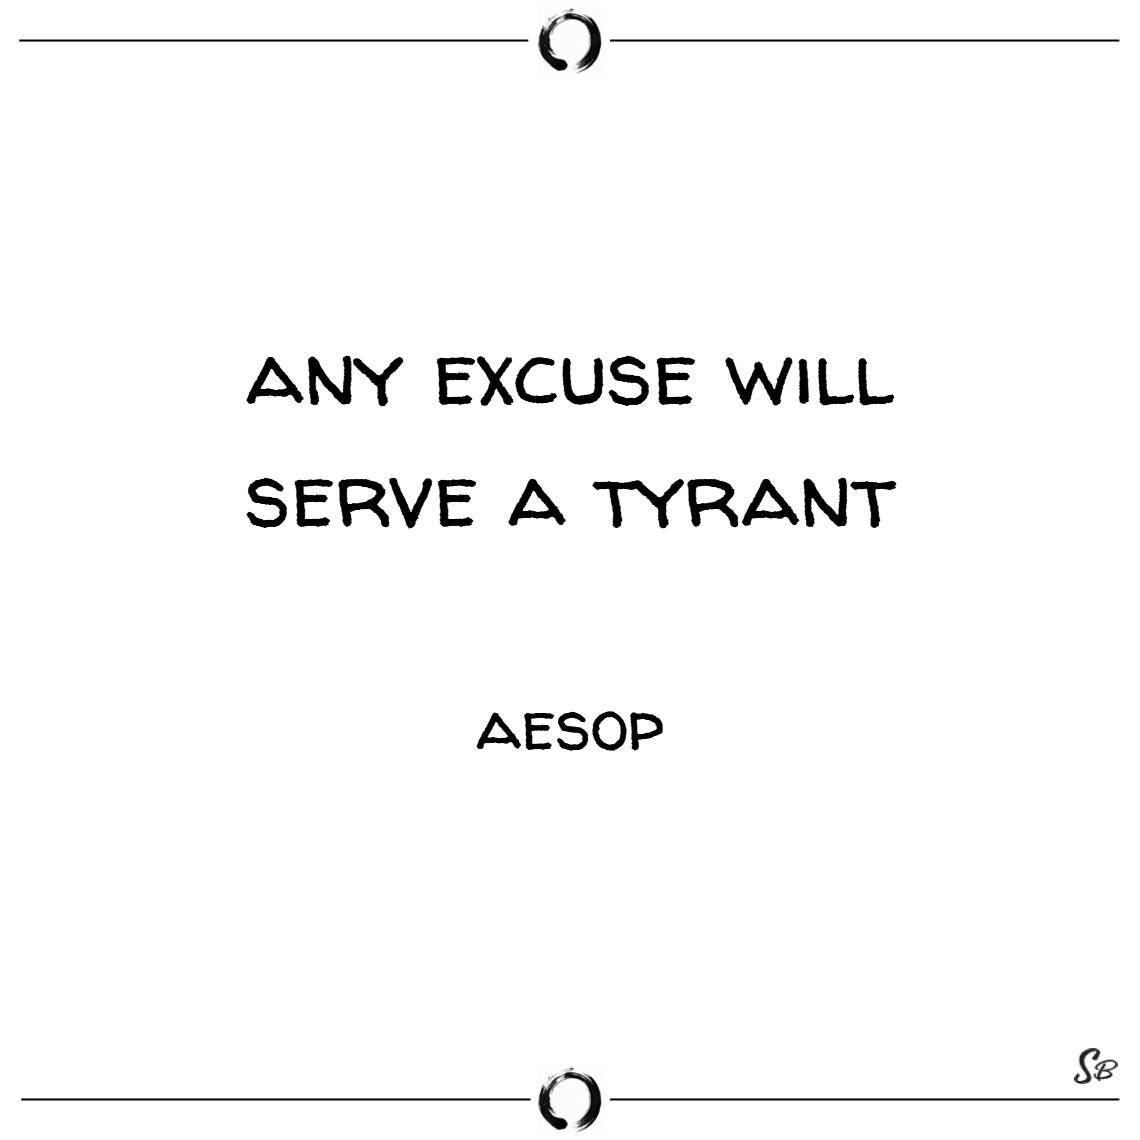 Any excuse will serve a tyrant. – aesop